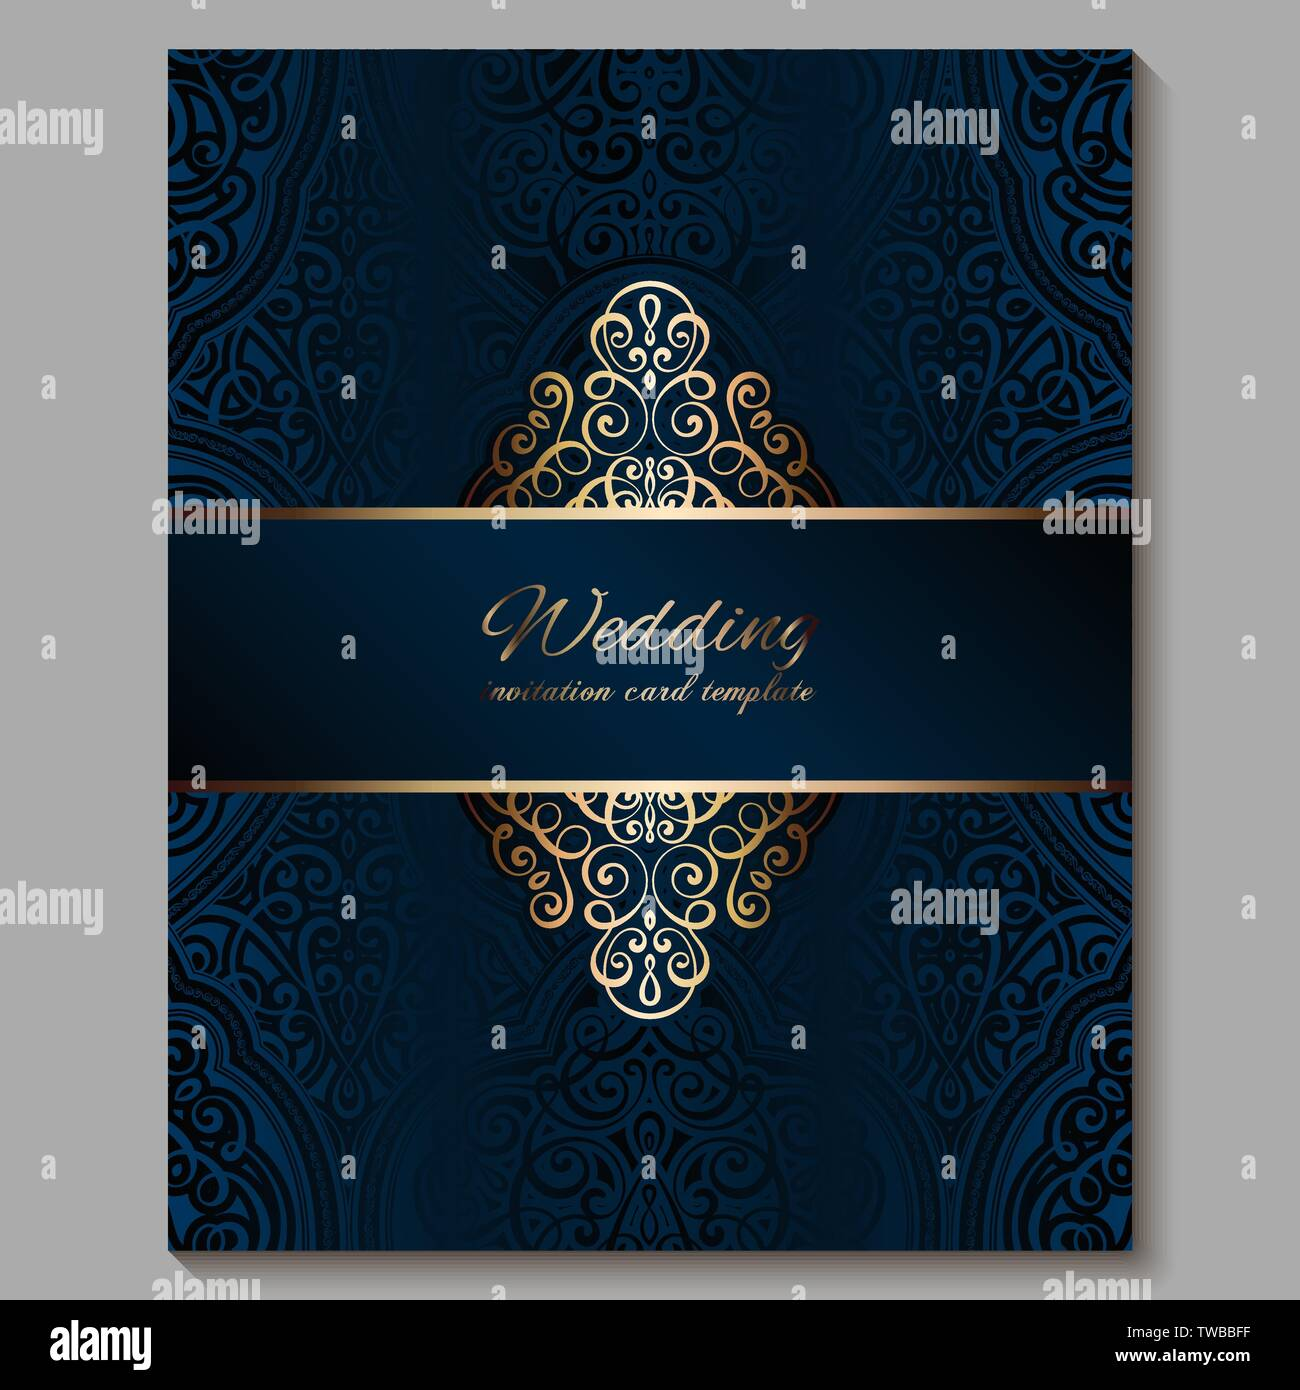 https www alamy com wedding invitation card with gold shiny eastern and baroque rich foliage royal blue ornate islamic background for your design islam arabic indian image256562083 html